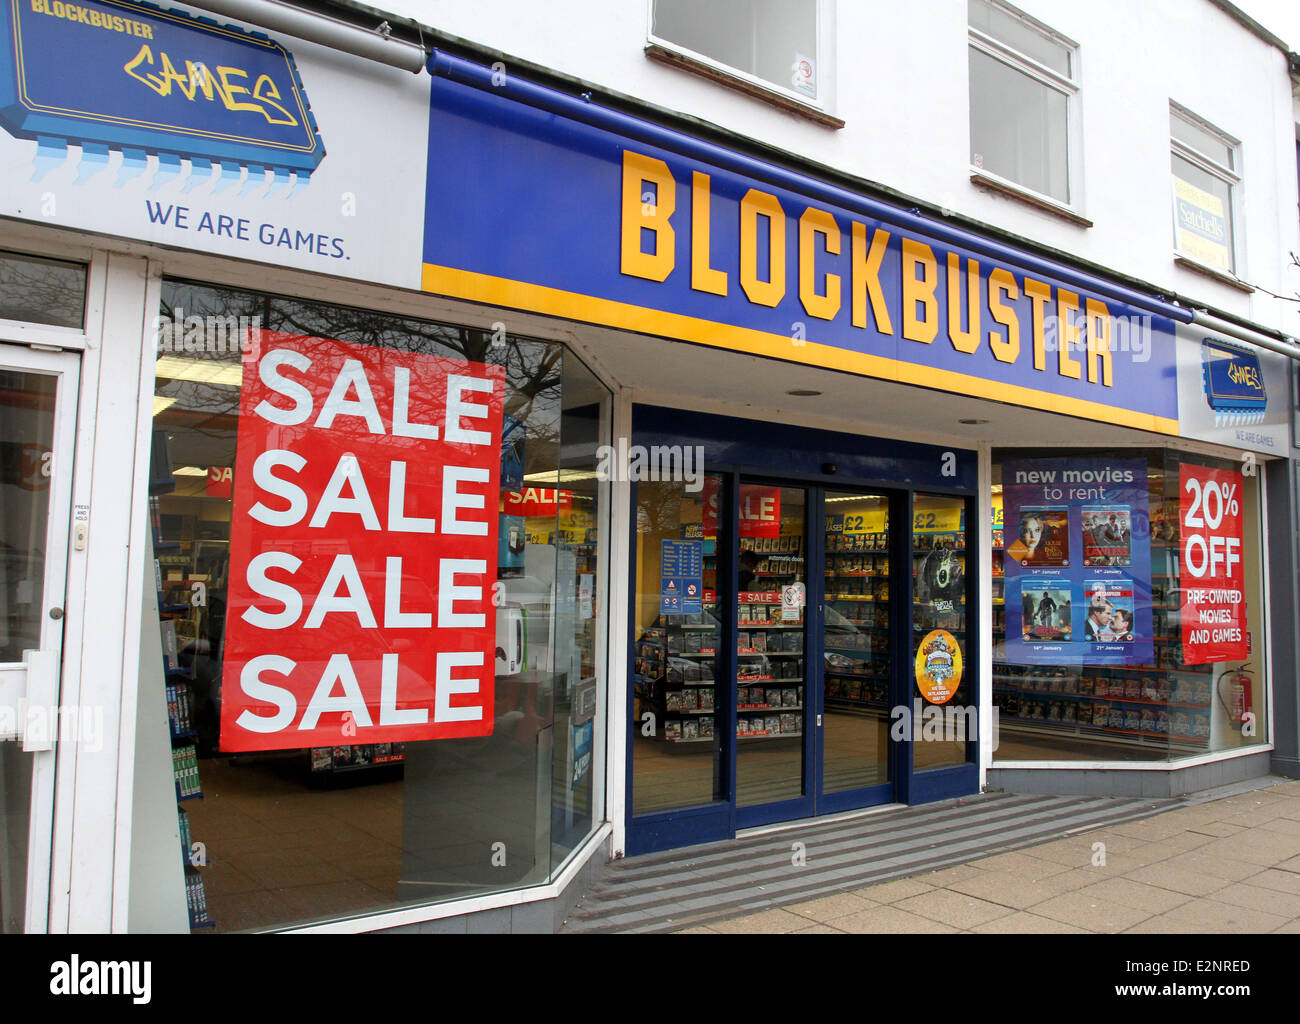 DVD and video games rental firm Blockbuster UK, which has 528 stores